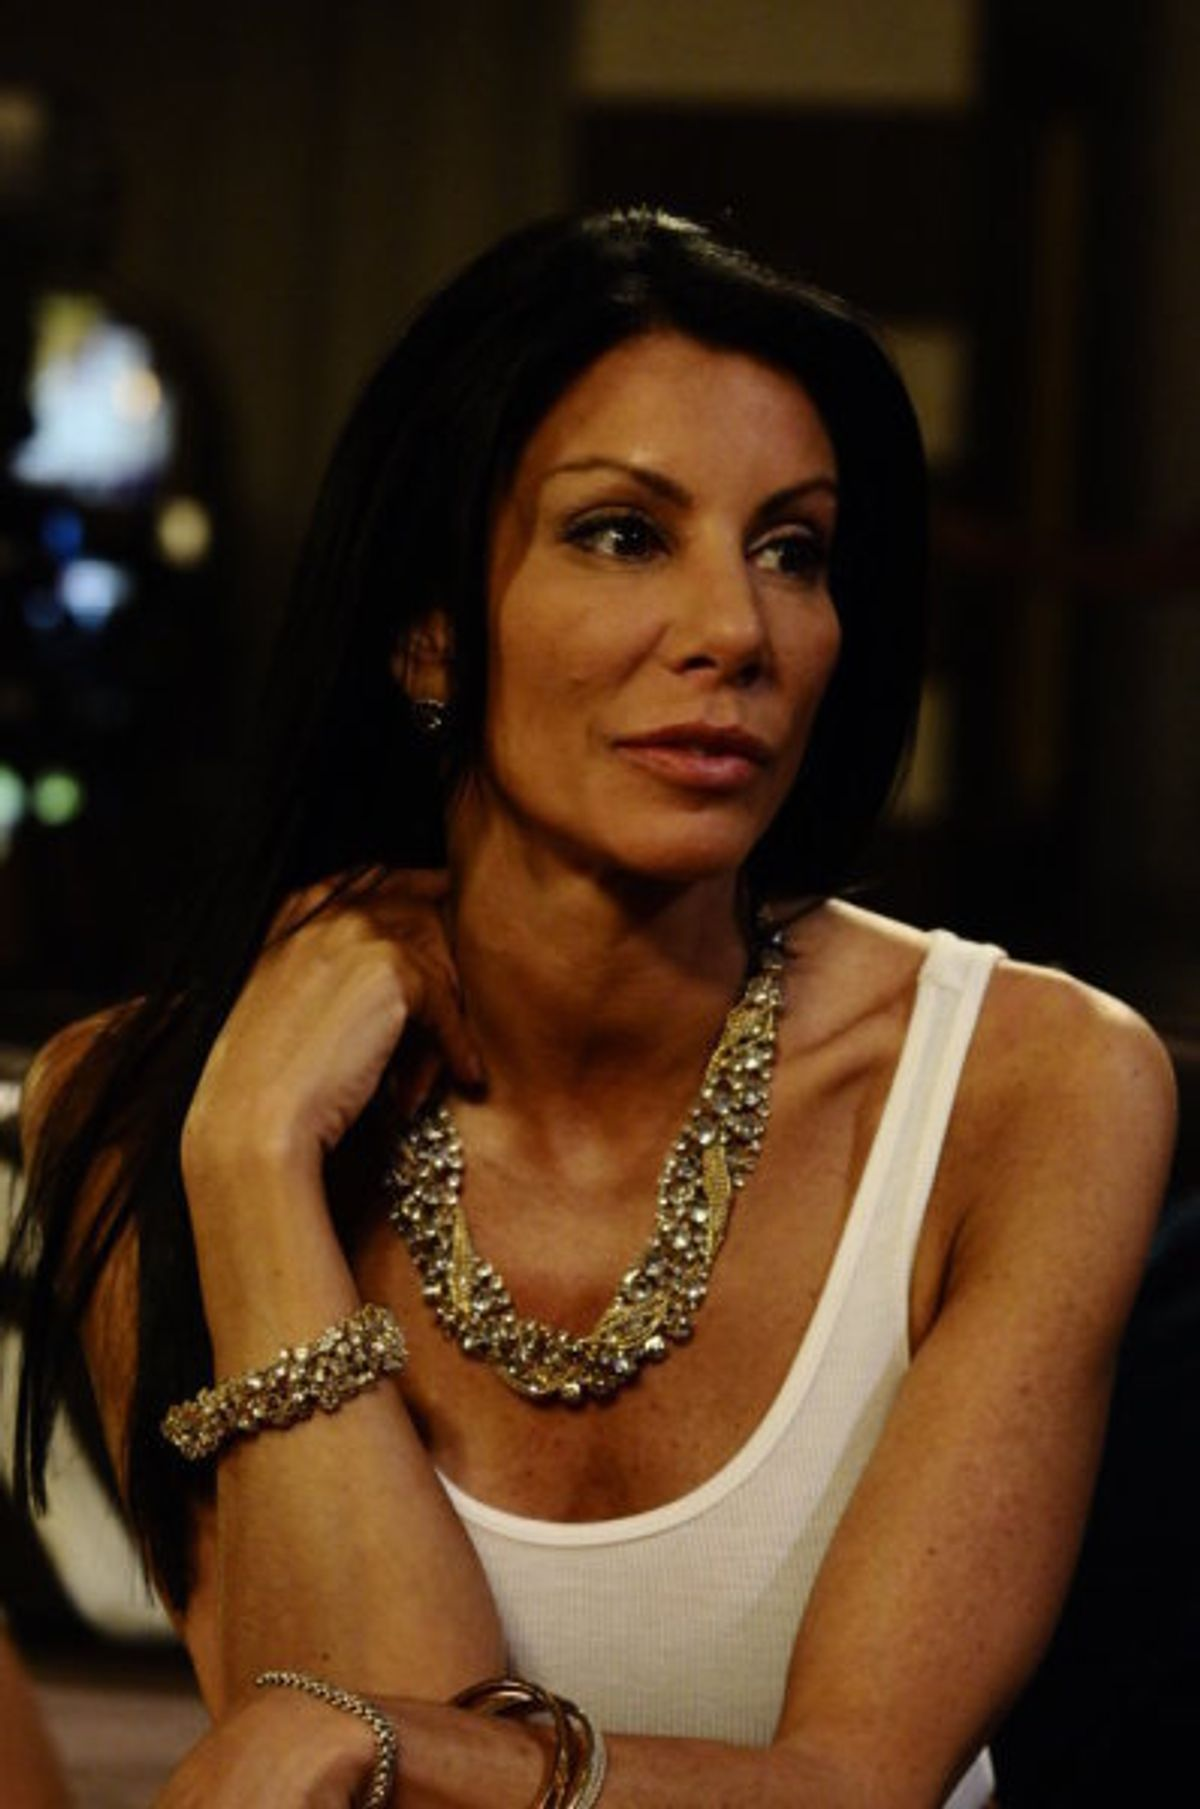 THE REAL HOUSEWIVES OF NEW JERSEY -- The Reunion Special -- Pictured: Danielle Staub -- Photo by: Andrei Jackamets/Bravo  (Andrei Jackamets)